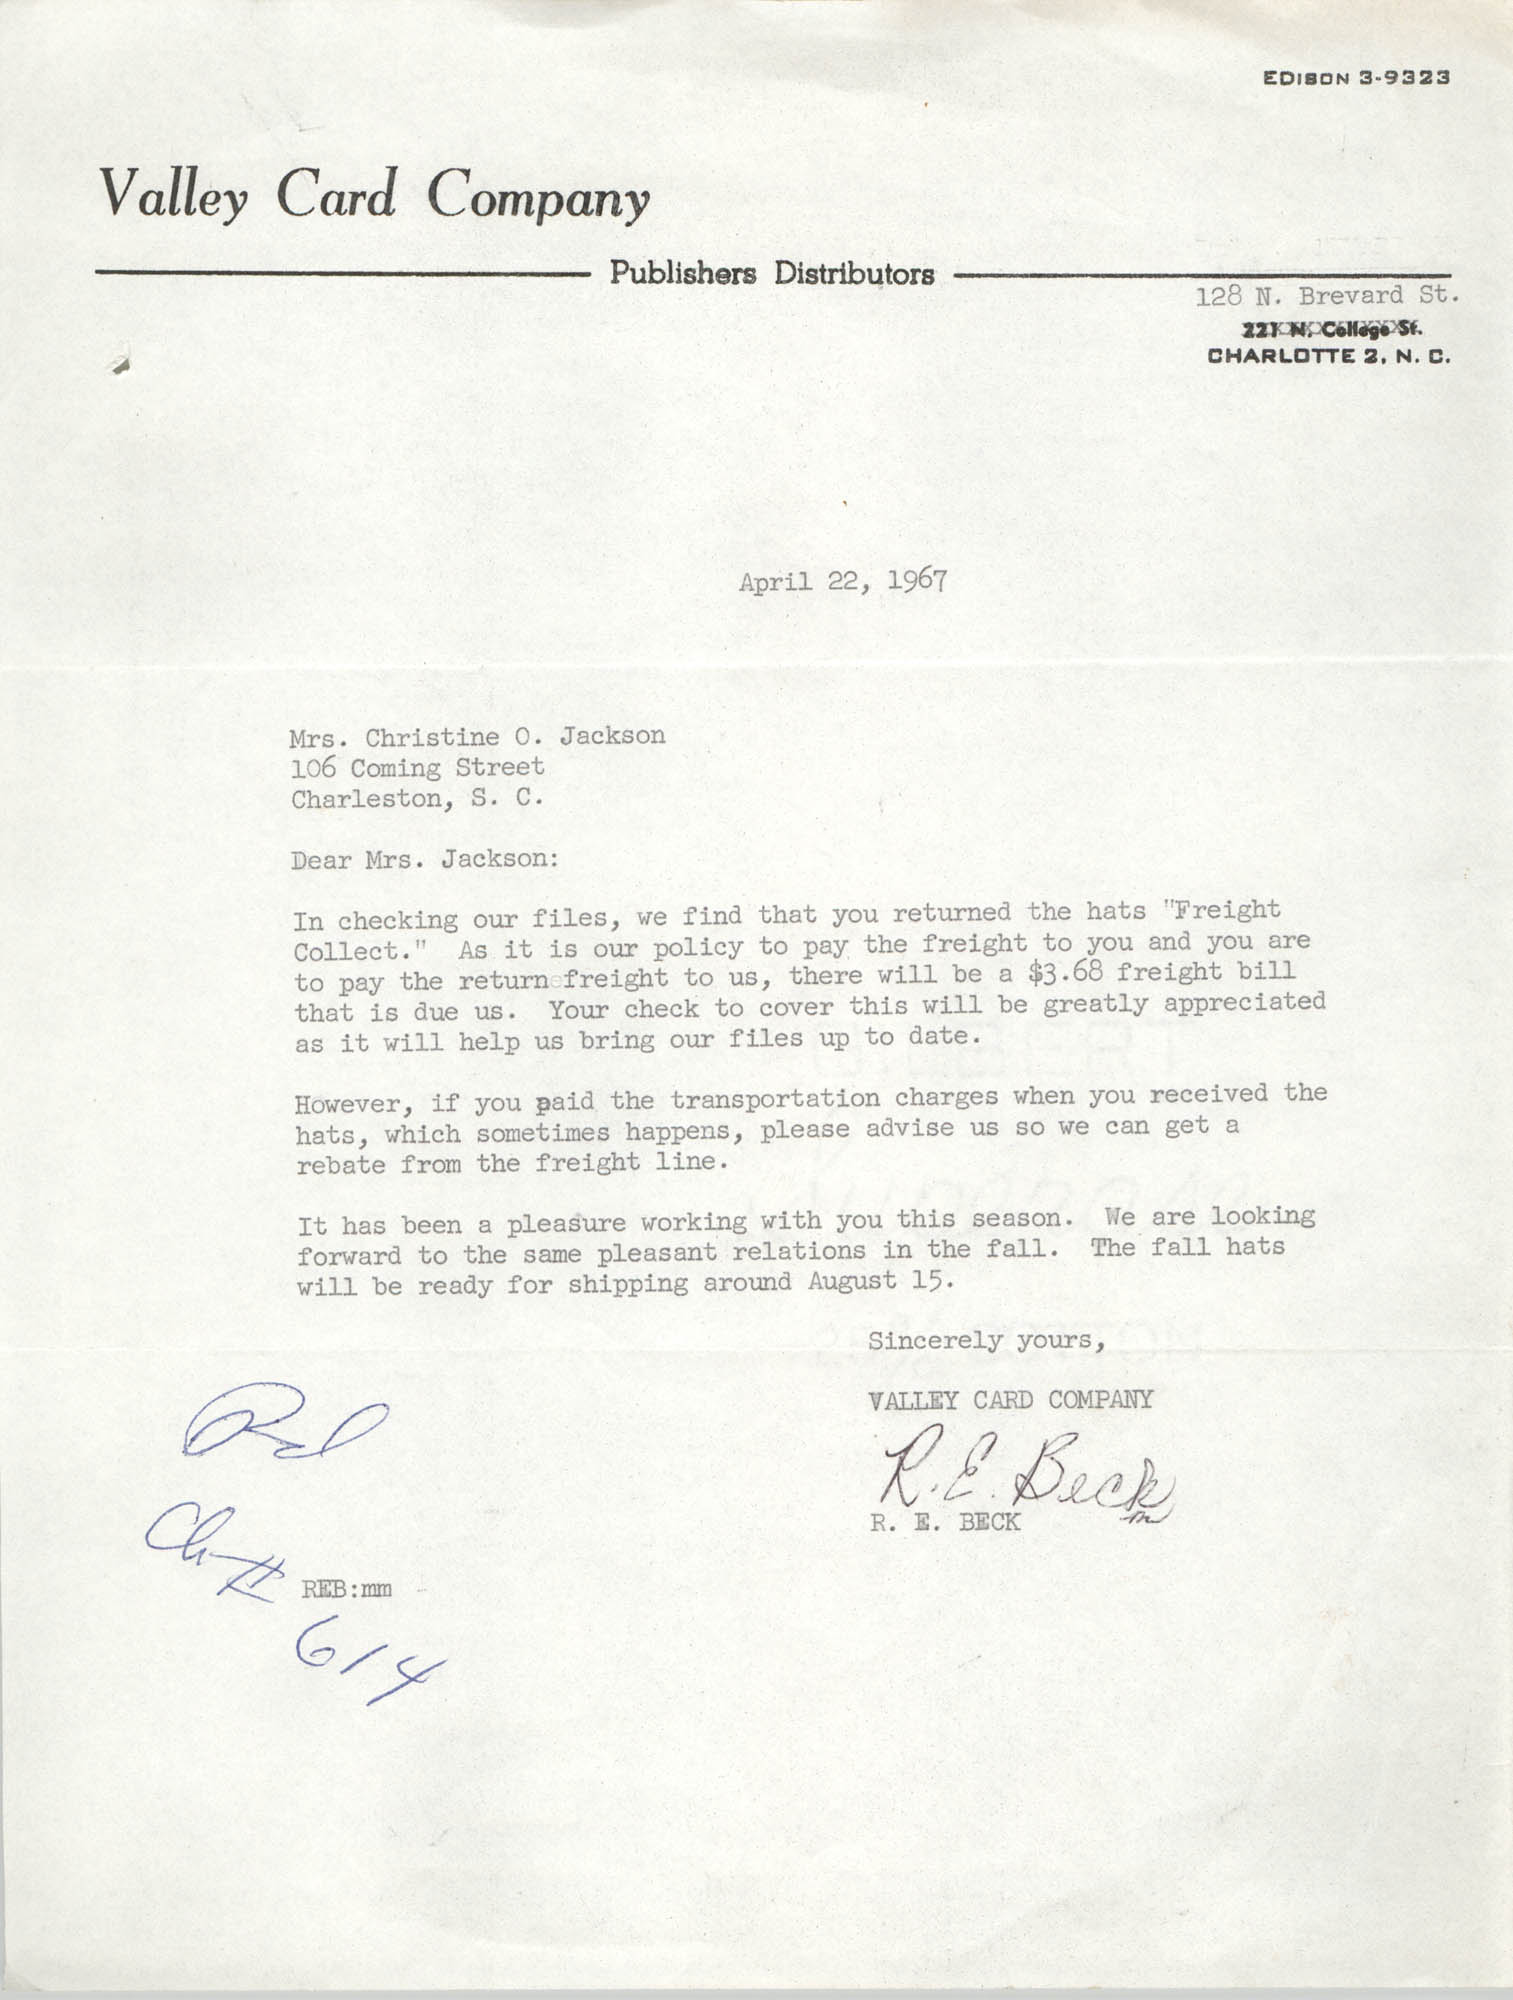 Letter from R. E. Beck to Christine O. Jackson, April 22, 1967